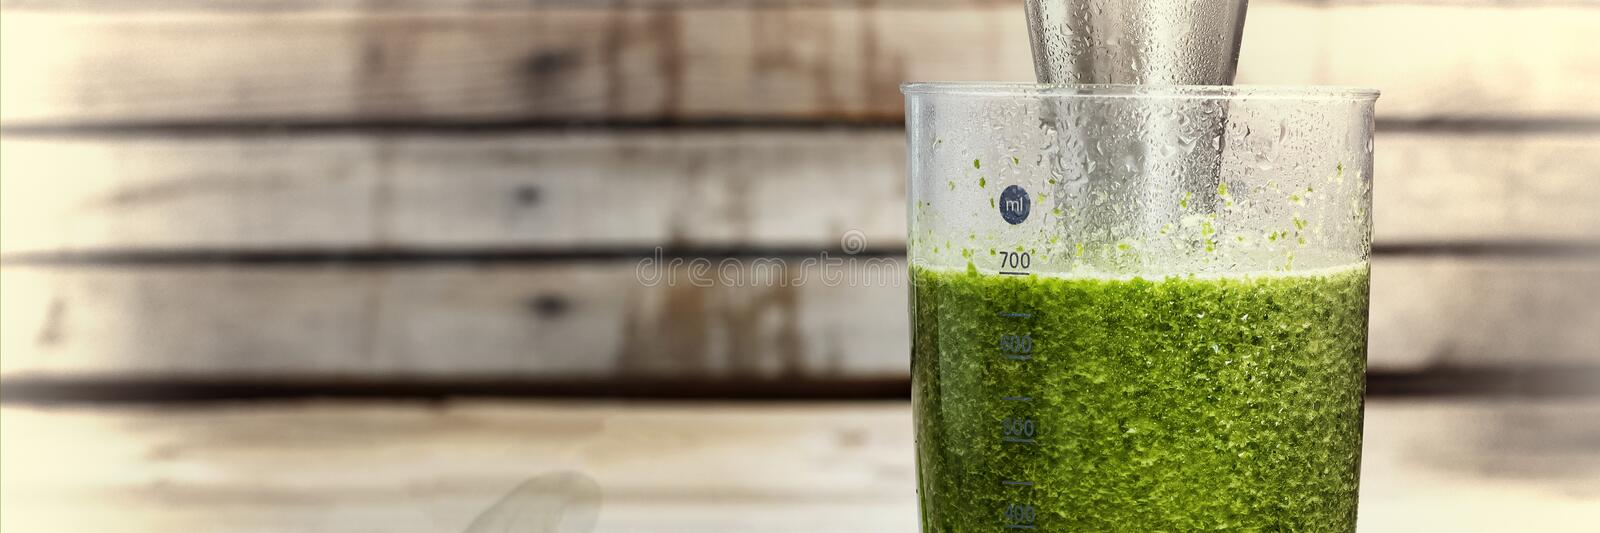 Detox drink made from spinach, cucumber, lime and avocado. Proper nutrition. DETOX drink made from green vegetables in a blender. royalty free stock photography